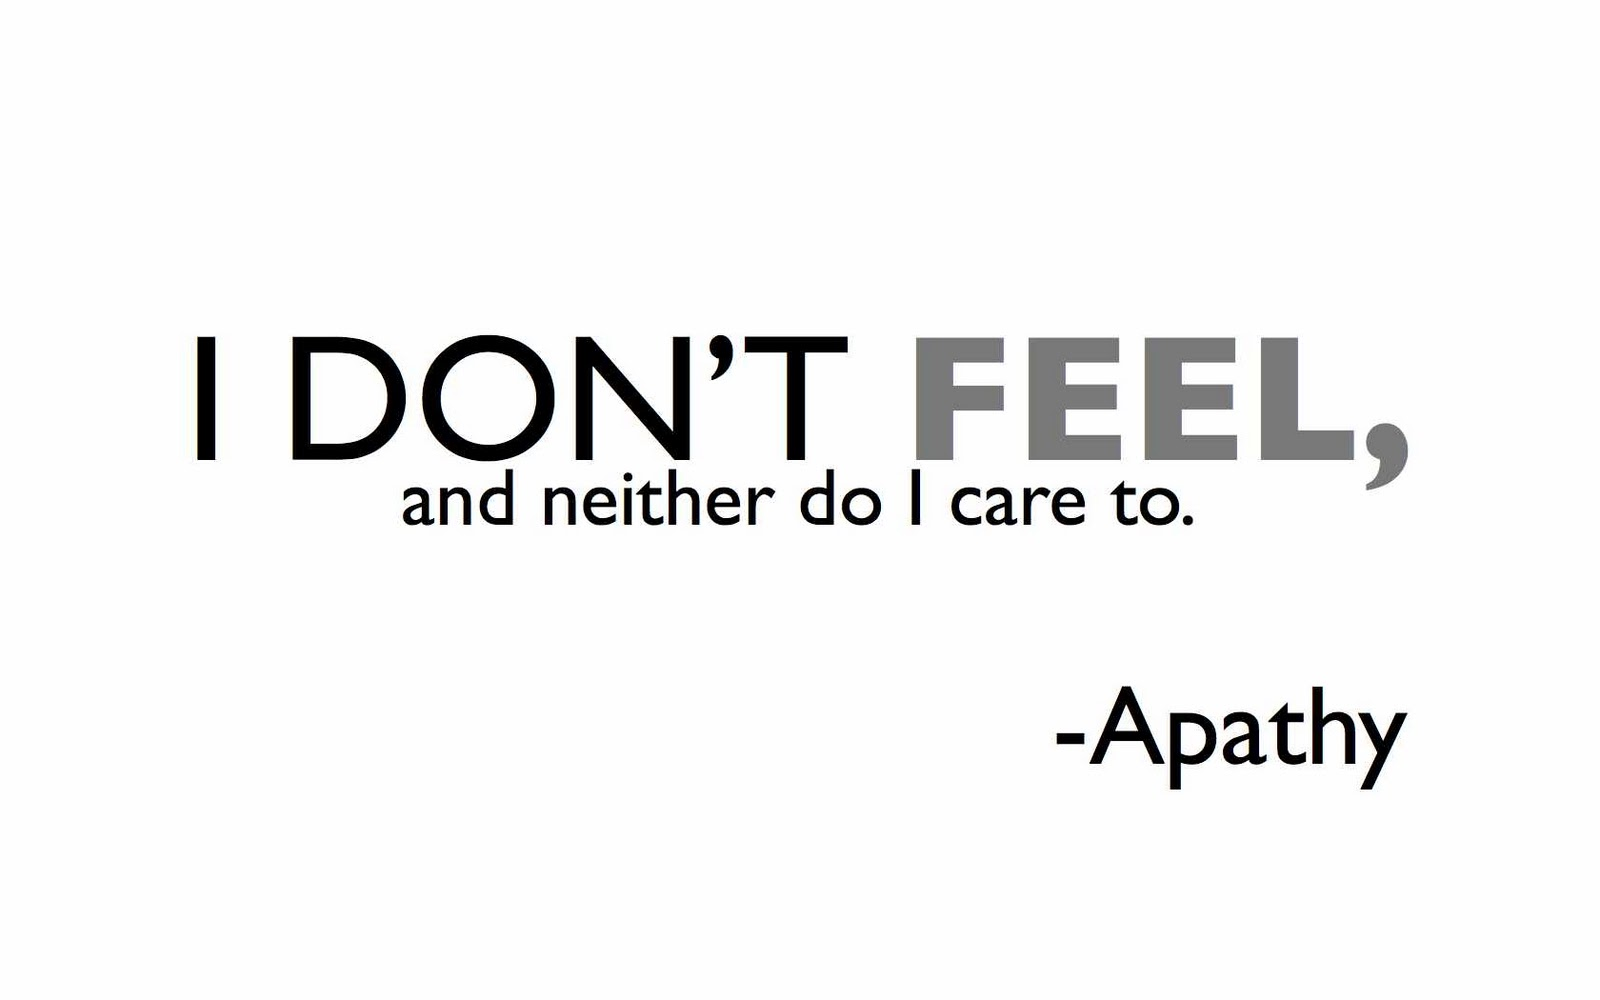 How to get rid of apathy